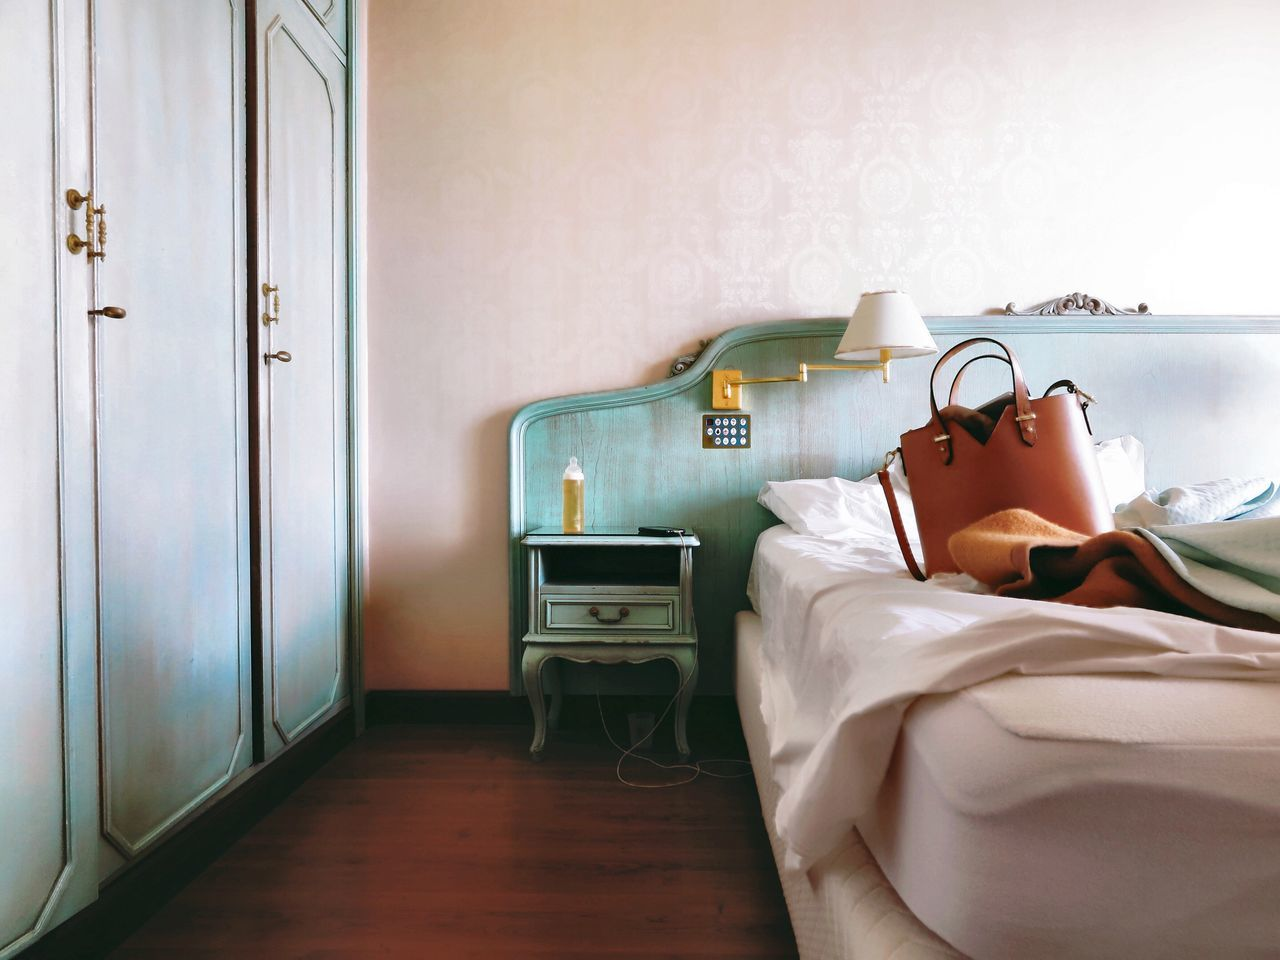 Home Interior Hotel Room Hotel Hotel Life Hotel View Old Buildings Indoors  Bed No People Bedroom Day Bag Baby Bottle Bottle Interior Interior Design Interior Views Holidays Still Life Lifestyles Old But Awesome Italy Lago Maggiore Let's Go. Together.